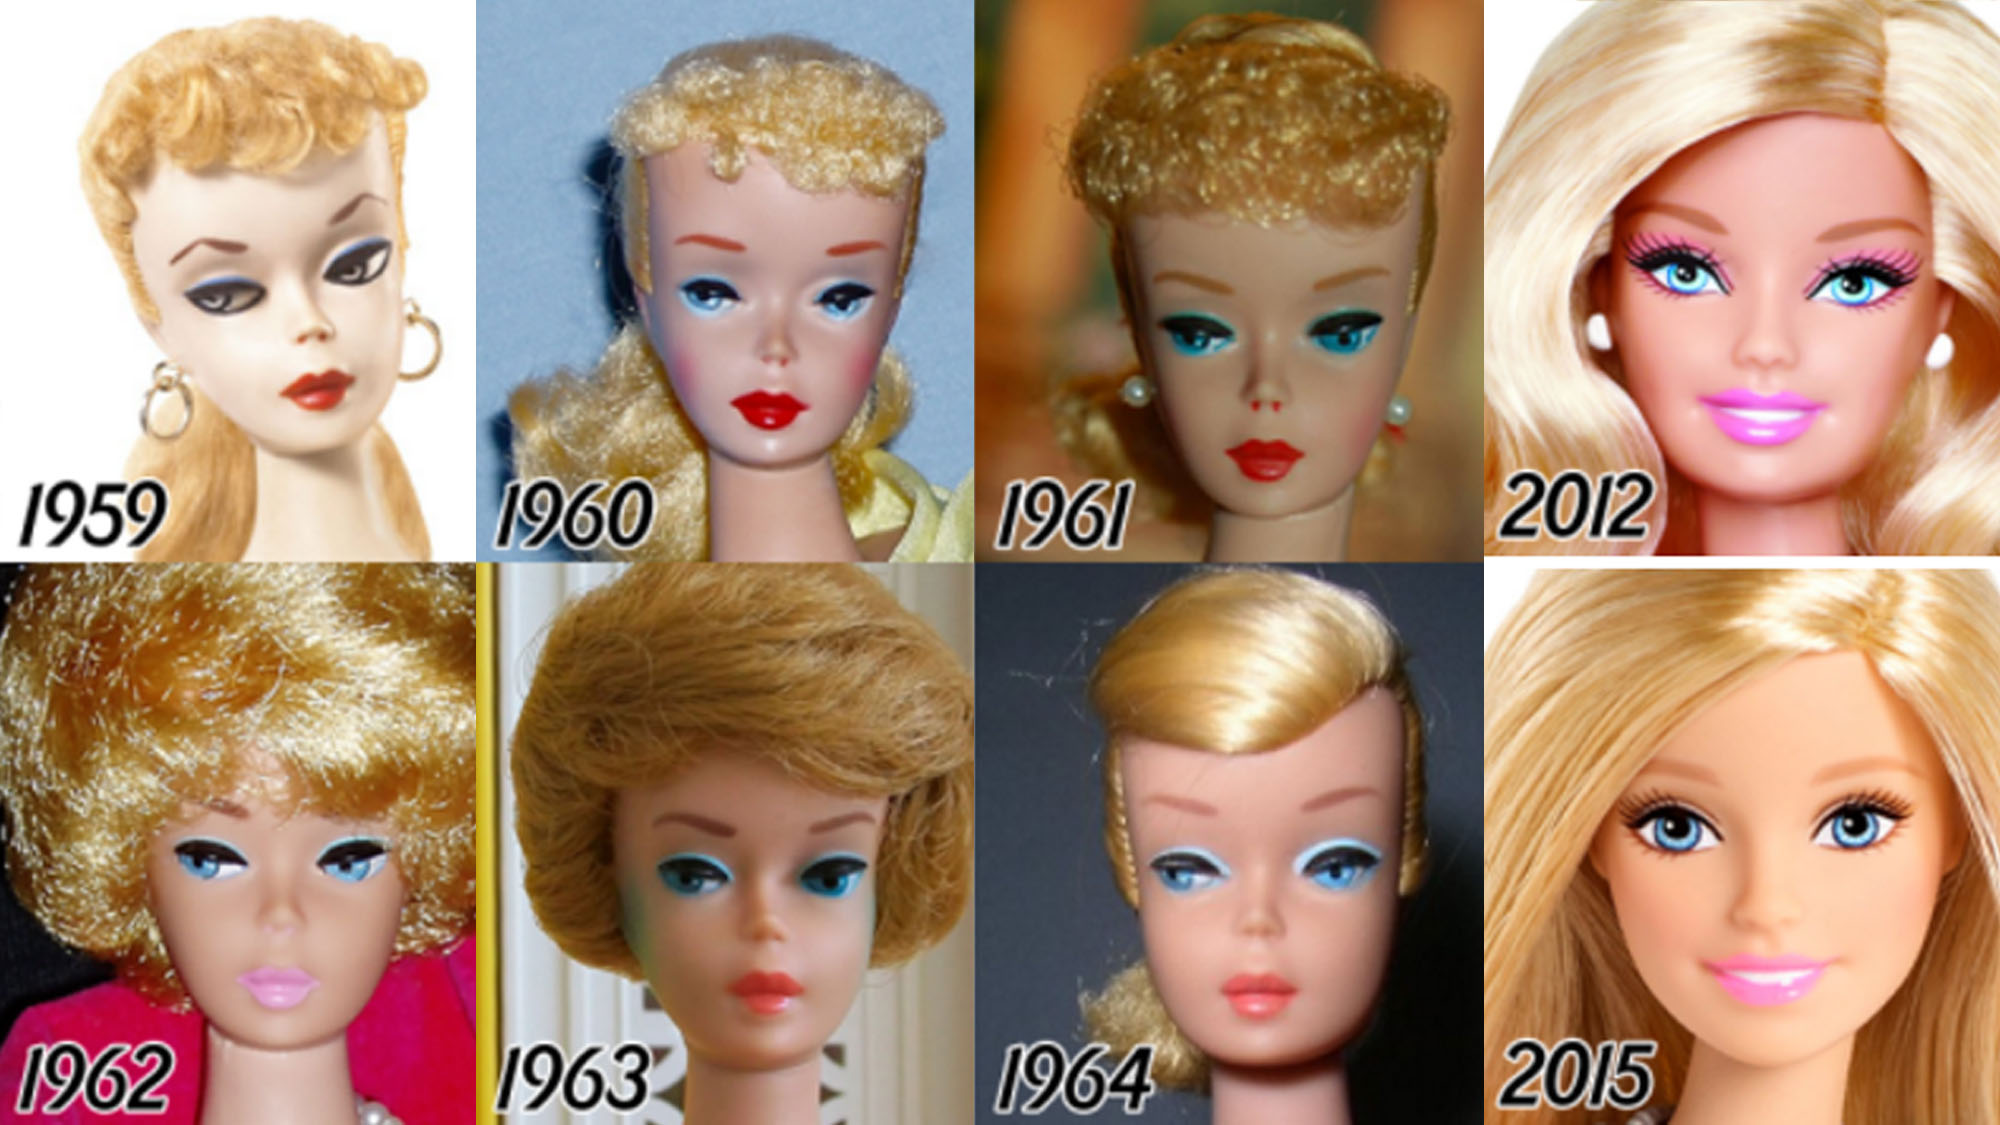 Barbie's beauty evolution: Then and now